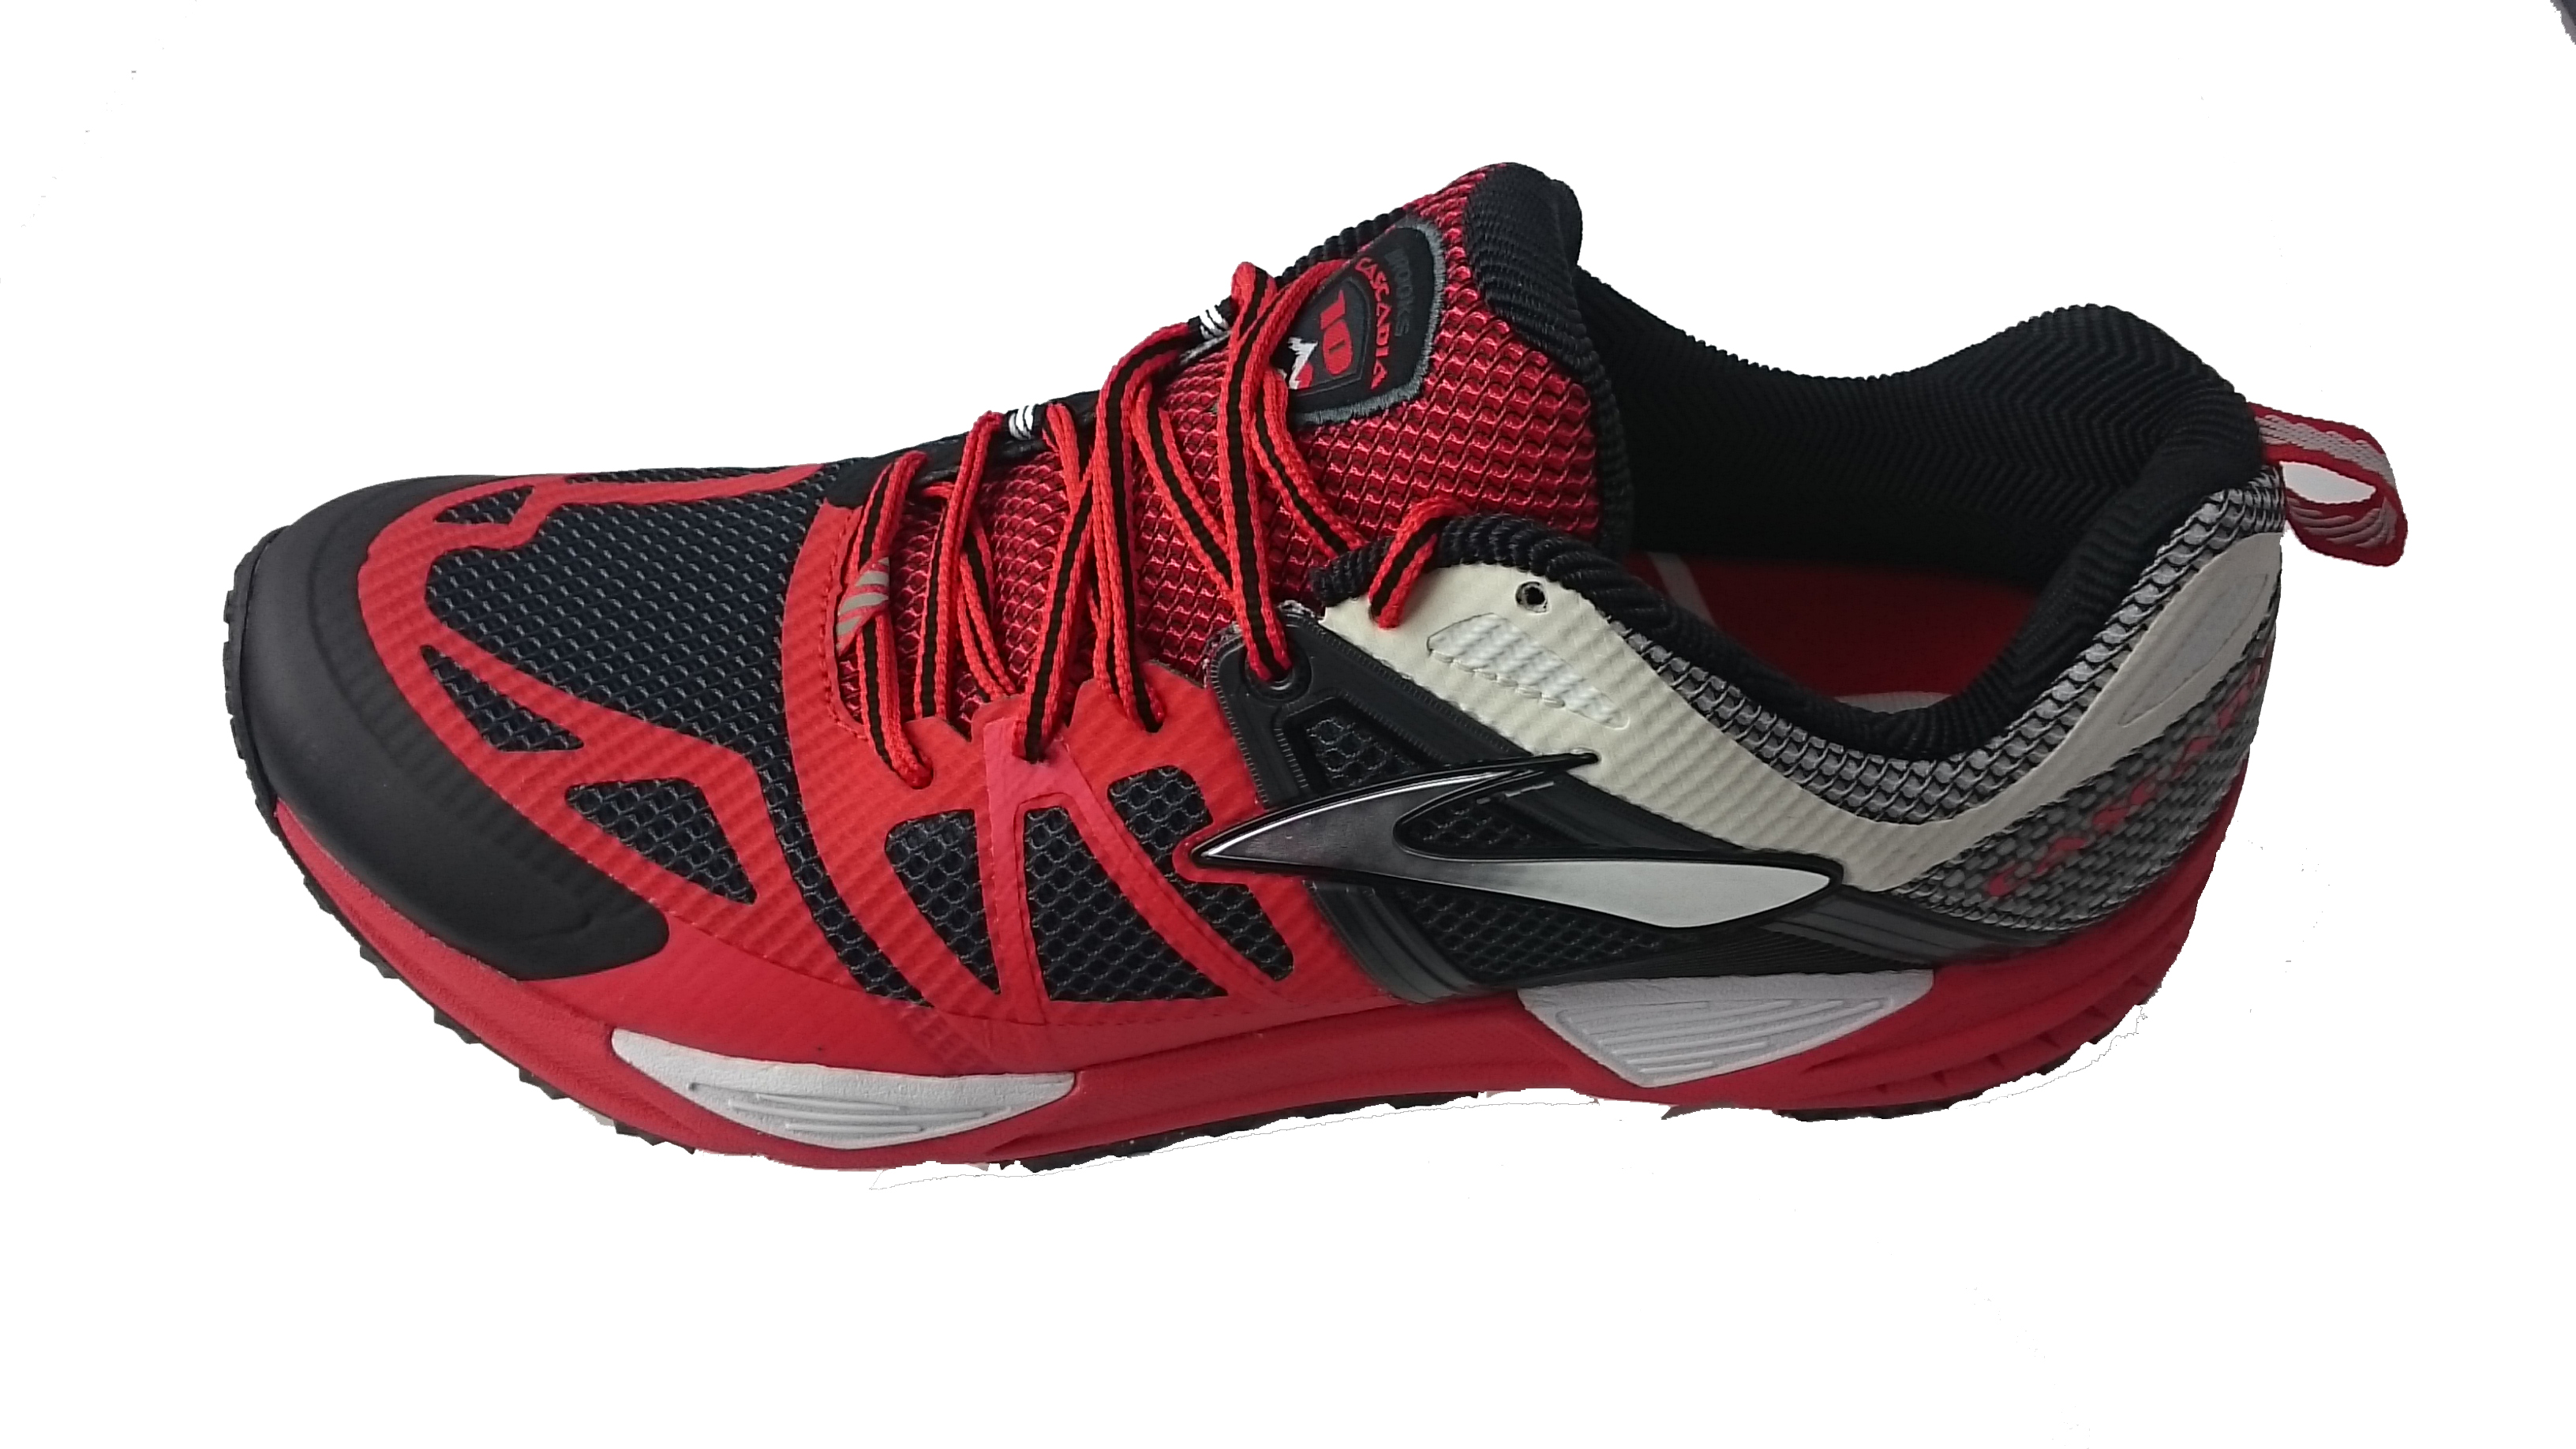 brooks cascadia rot 2 -carboo-shop.de - http://www.carboo-shop.de/index.php?route=product/search&search=cascadia